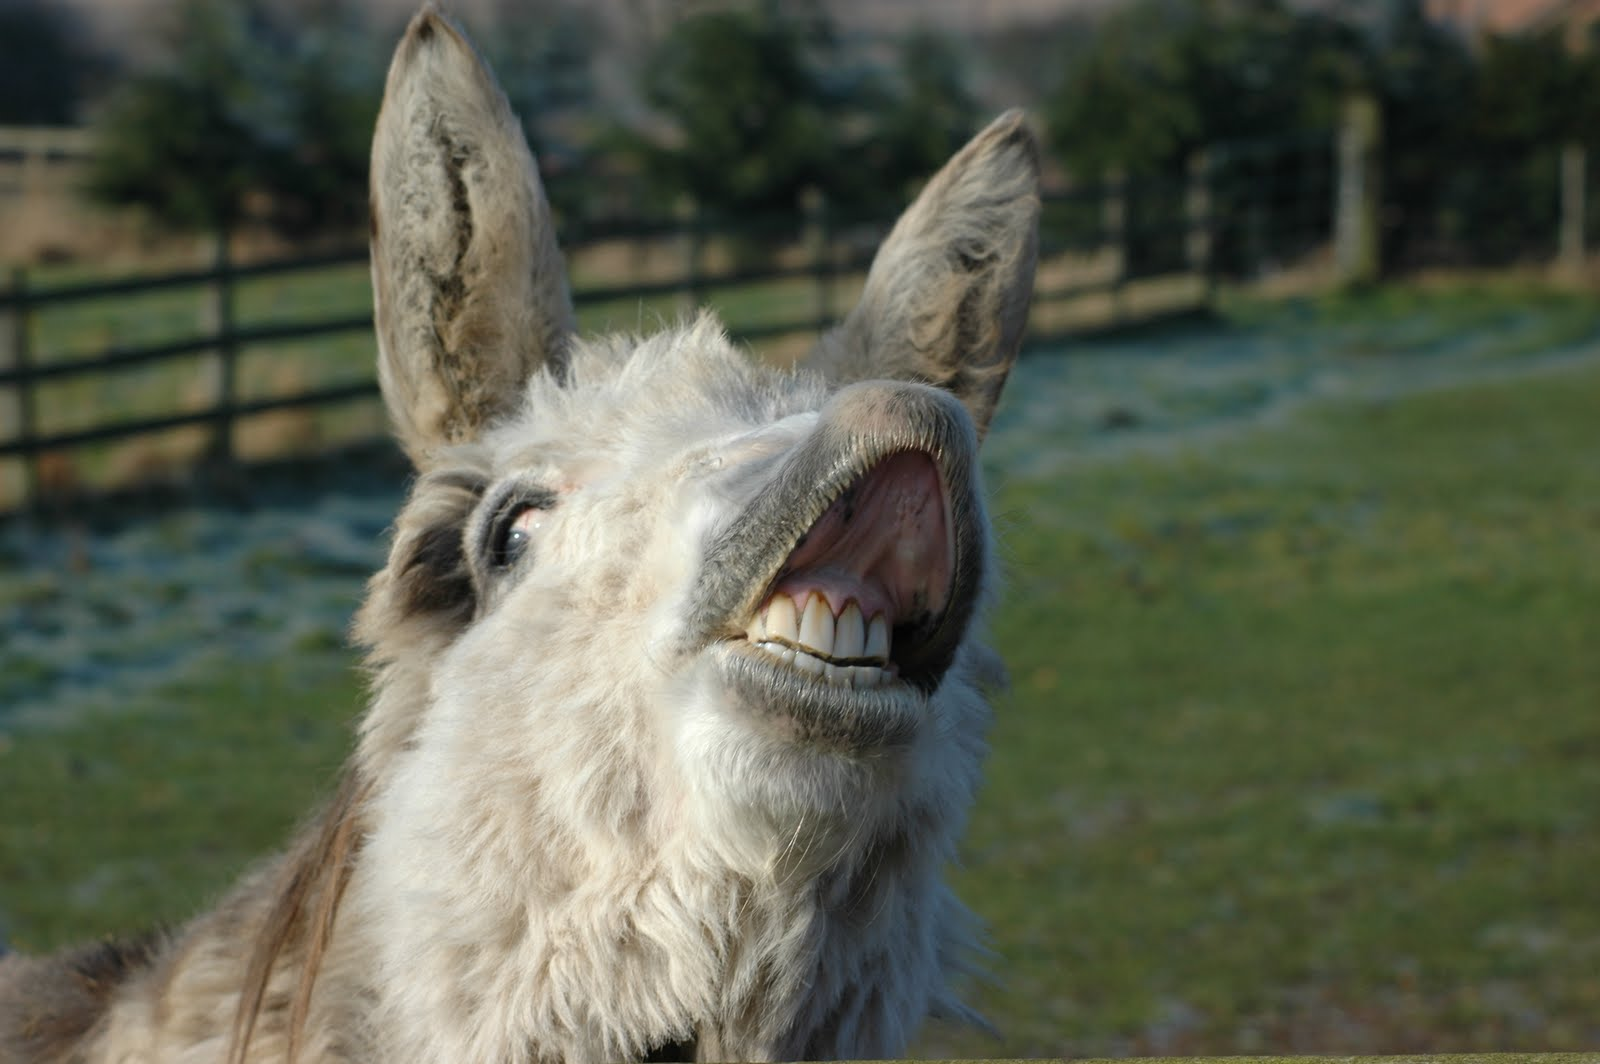 funny donkey faces - photo #30